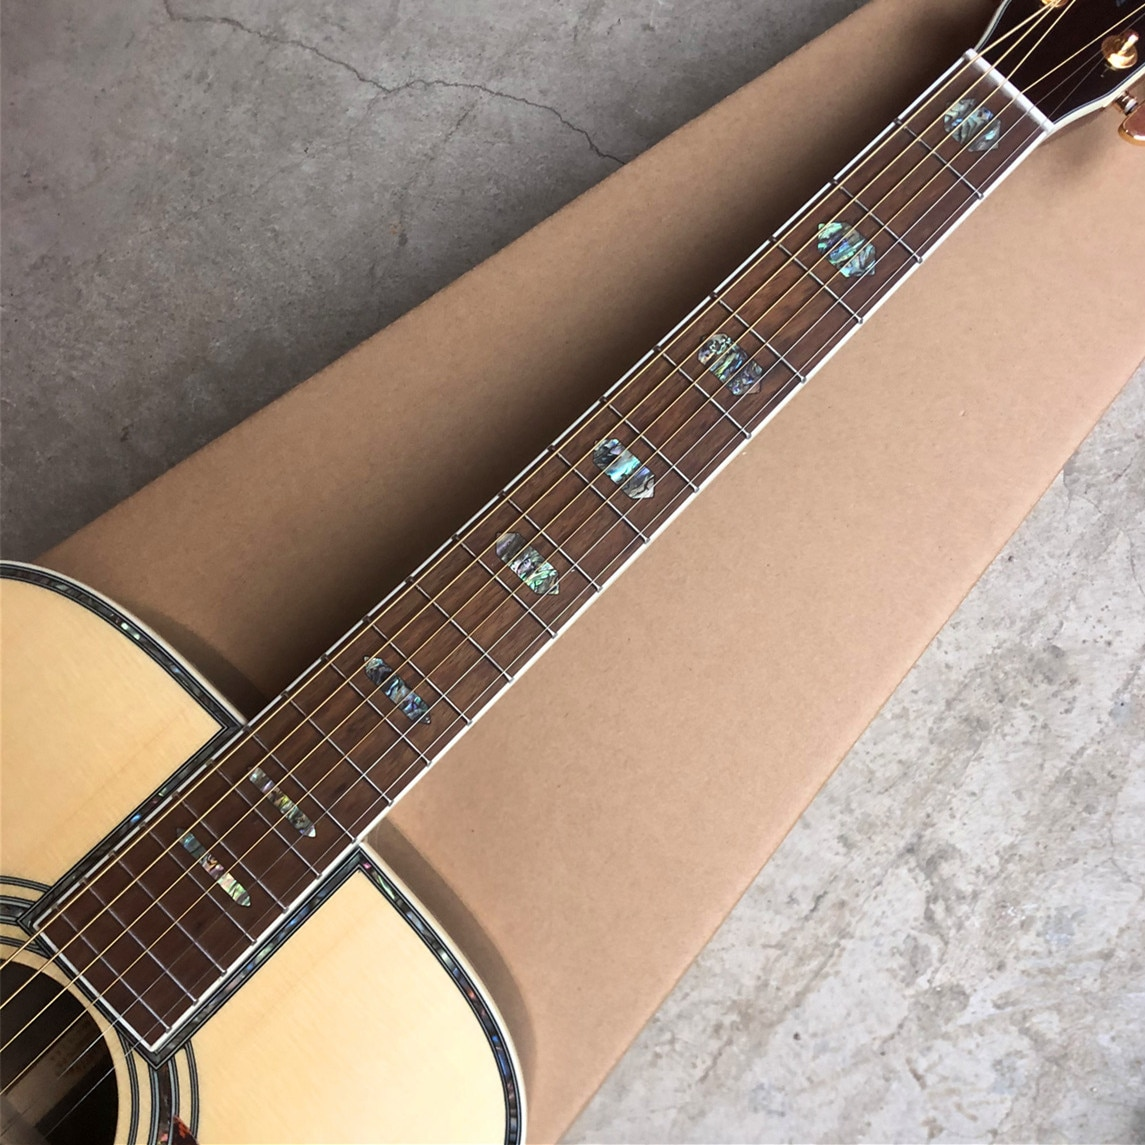 Factory Shop 41 Inch Solid Spruce D Style Acoustic Guitar Rosewood Fingerboard and Body enlarge